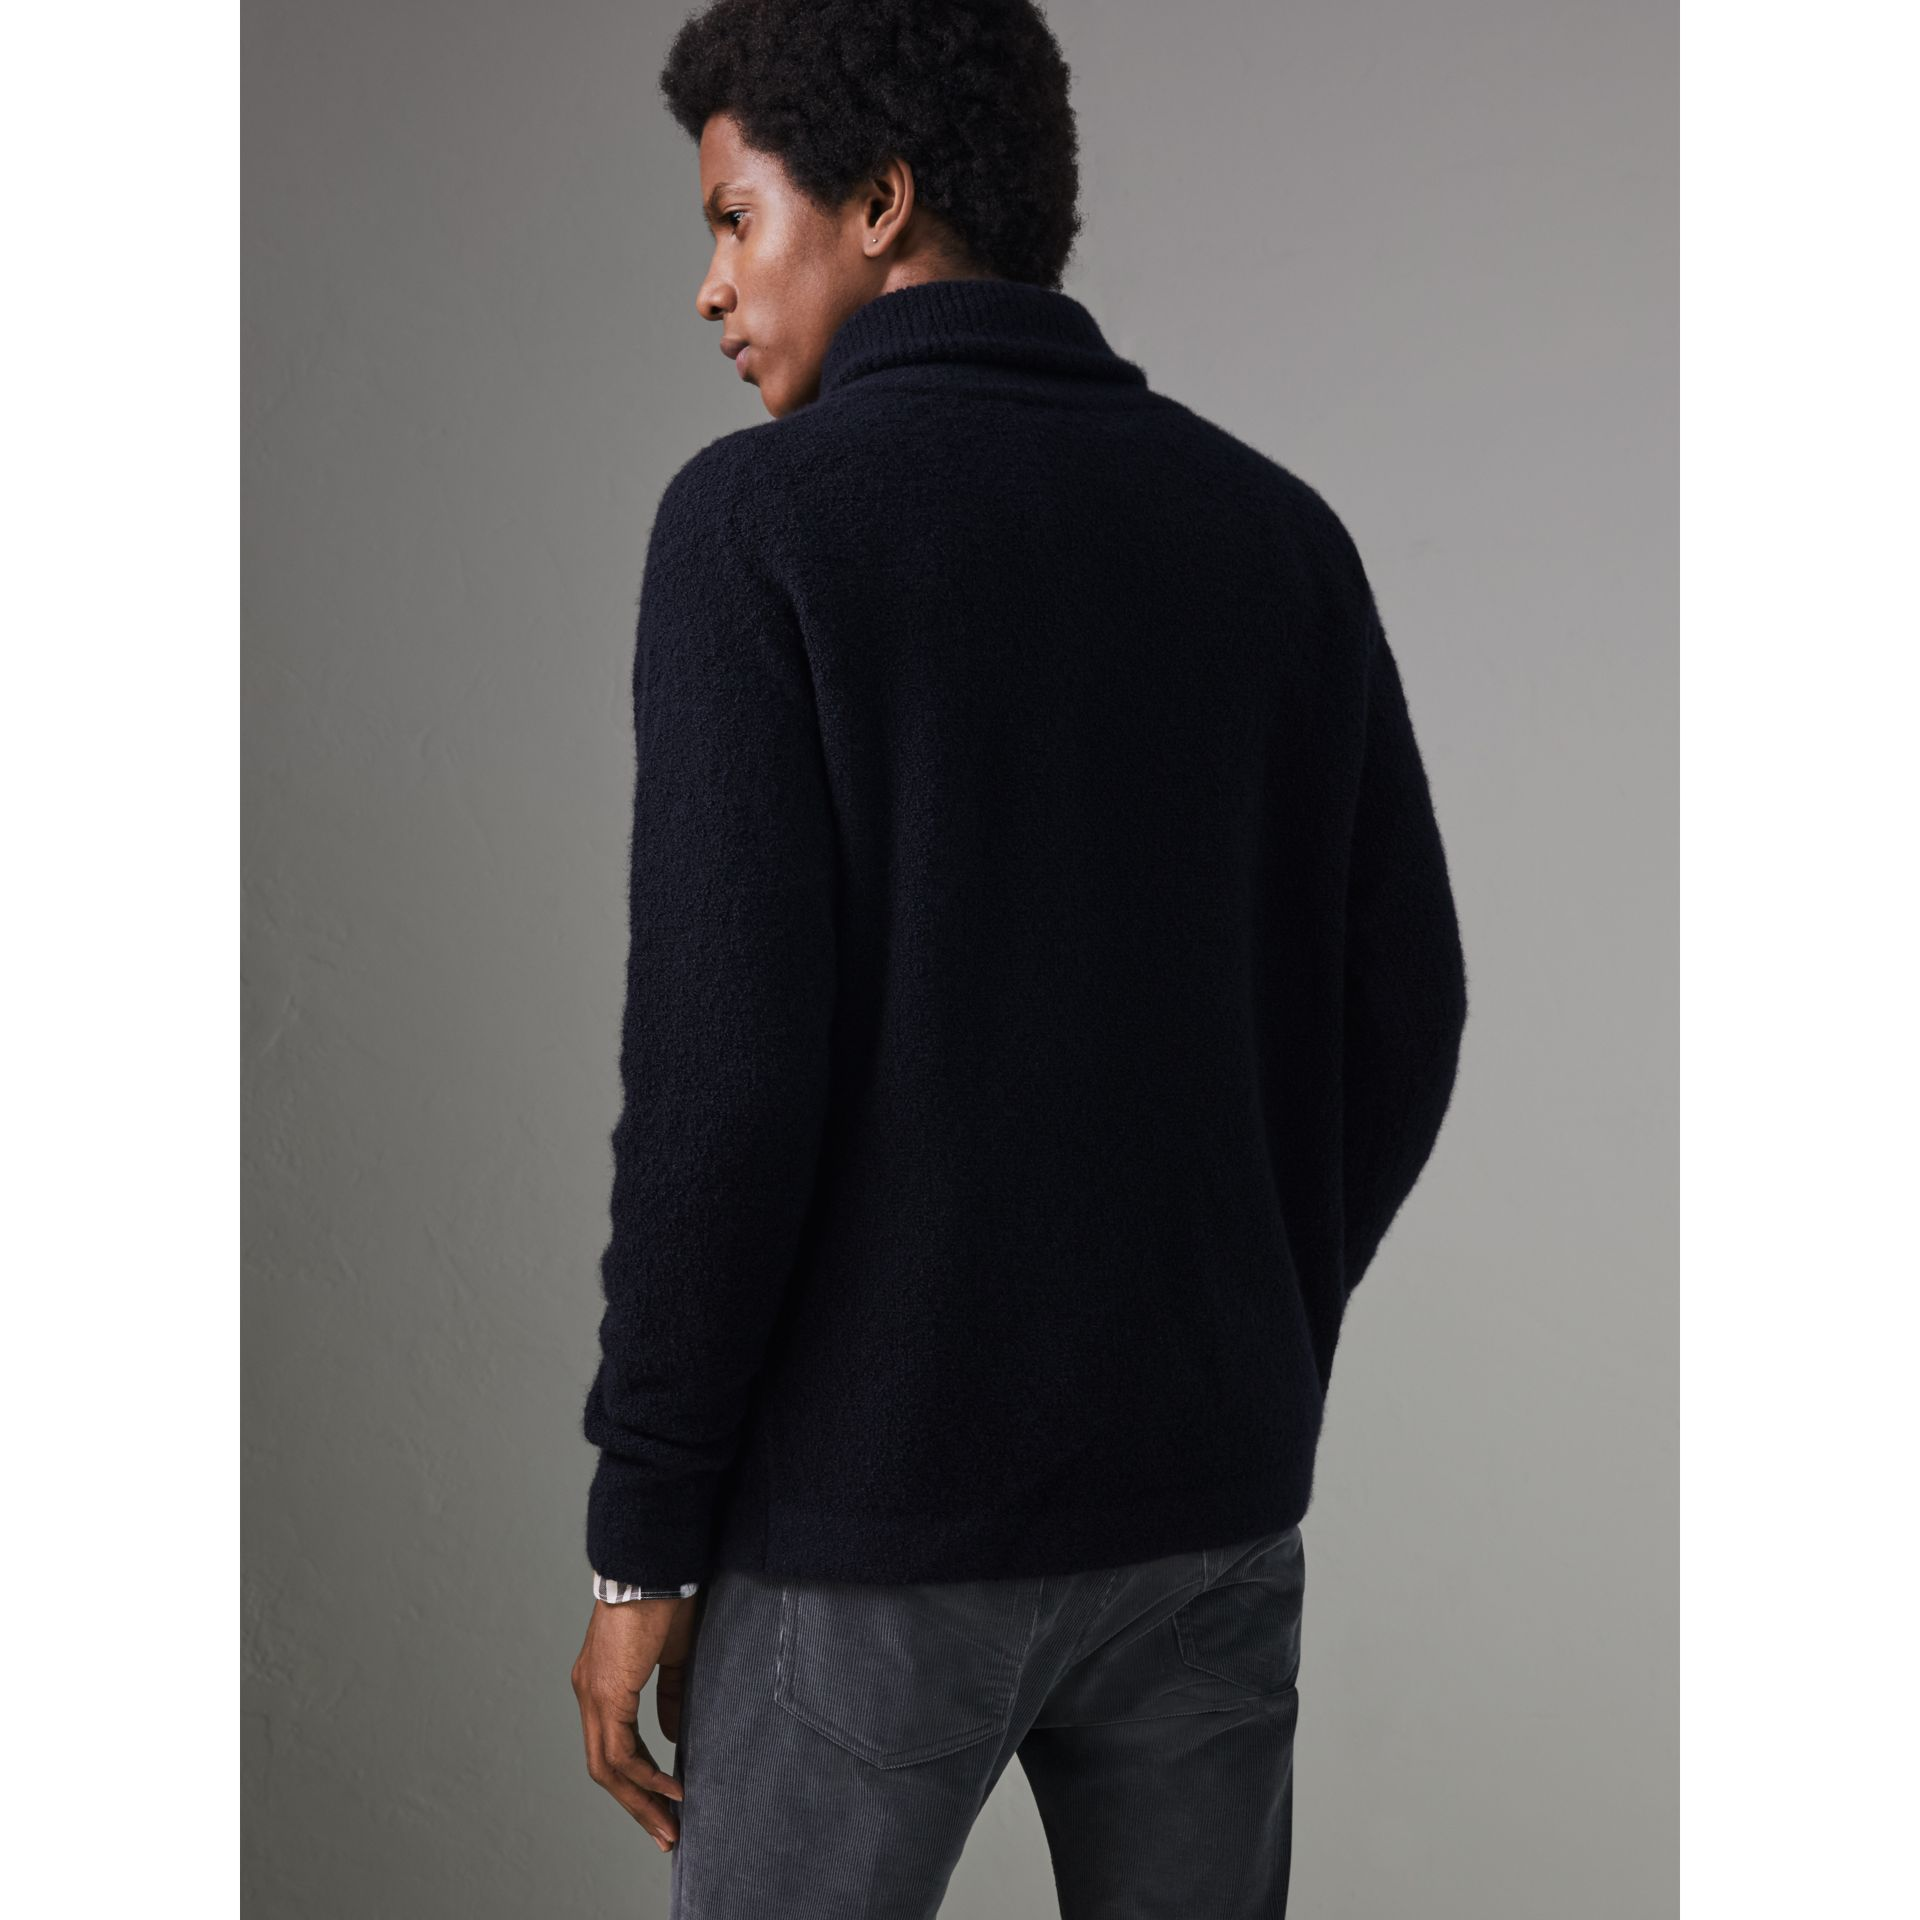 Zip-neck Cashmere Blend Fleece Sweater in Navy - Men | Burberry - gallery image 2